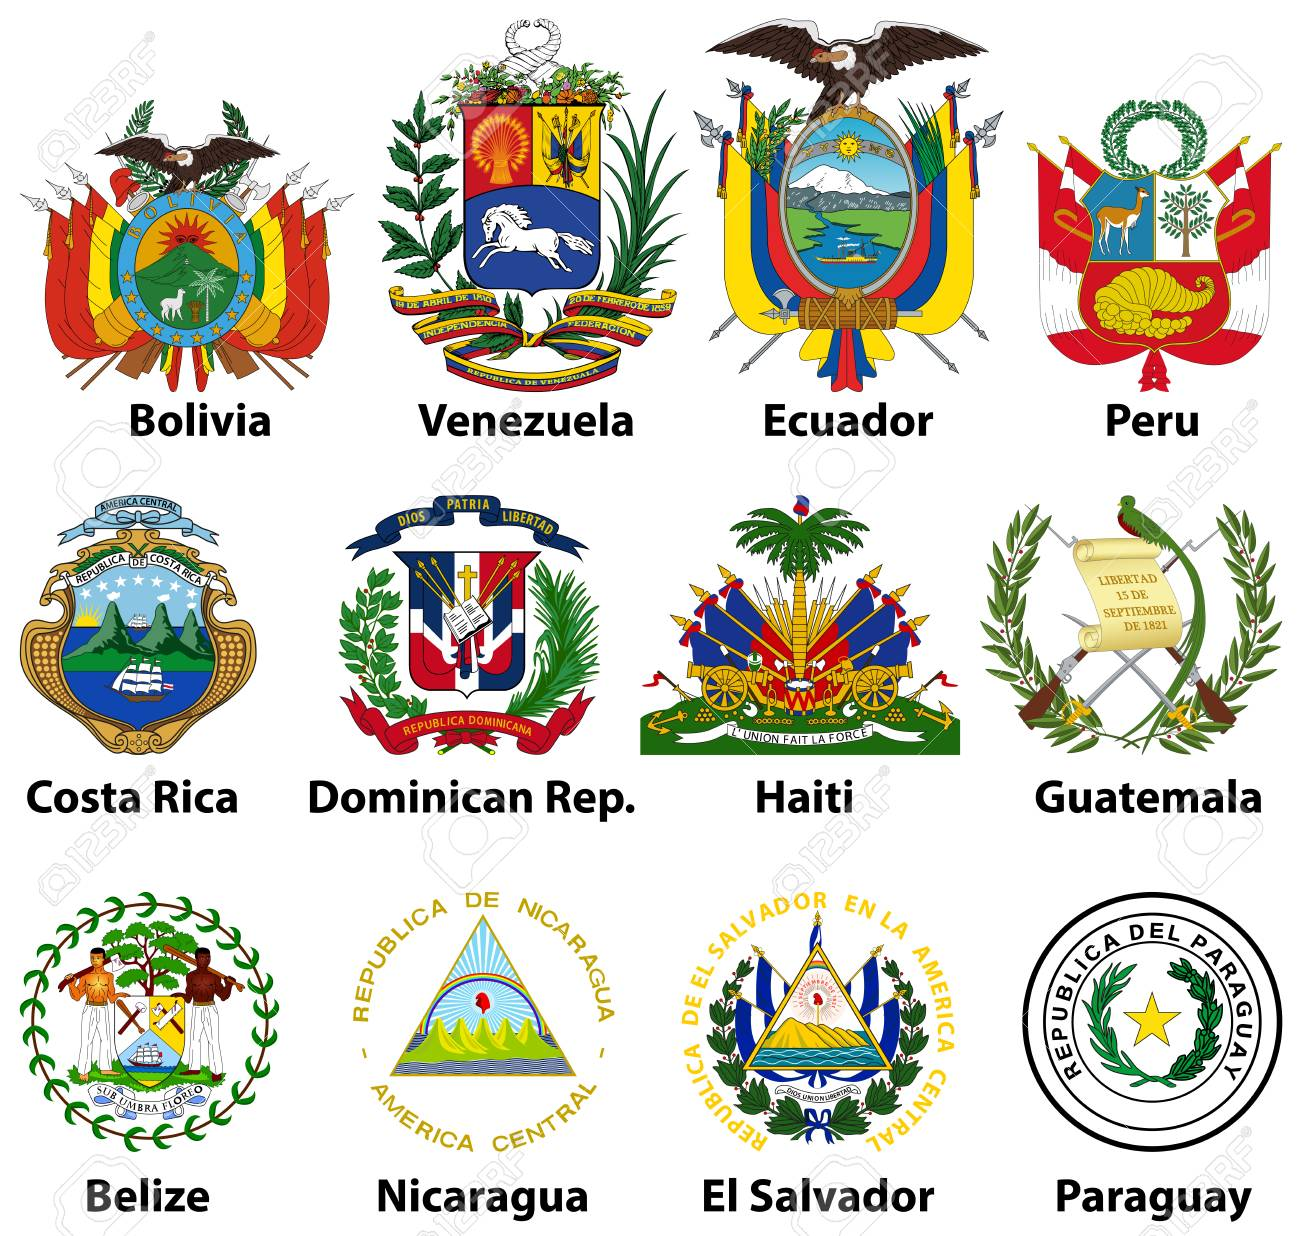 Coat of arms icons of Central and South American countries